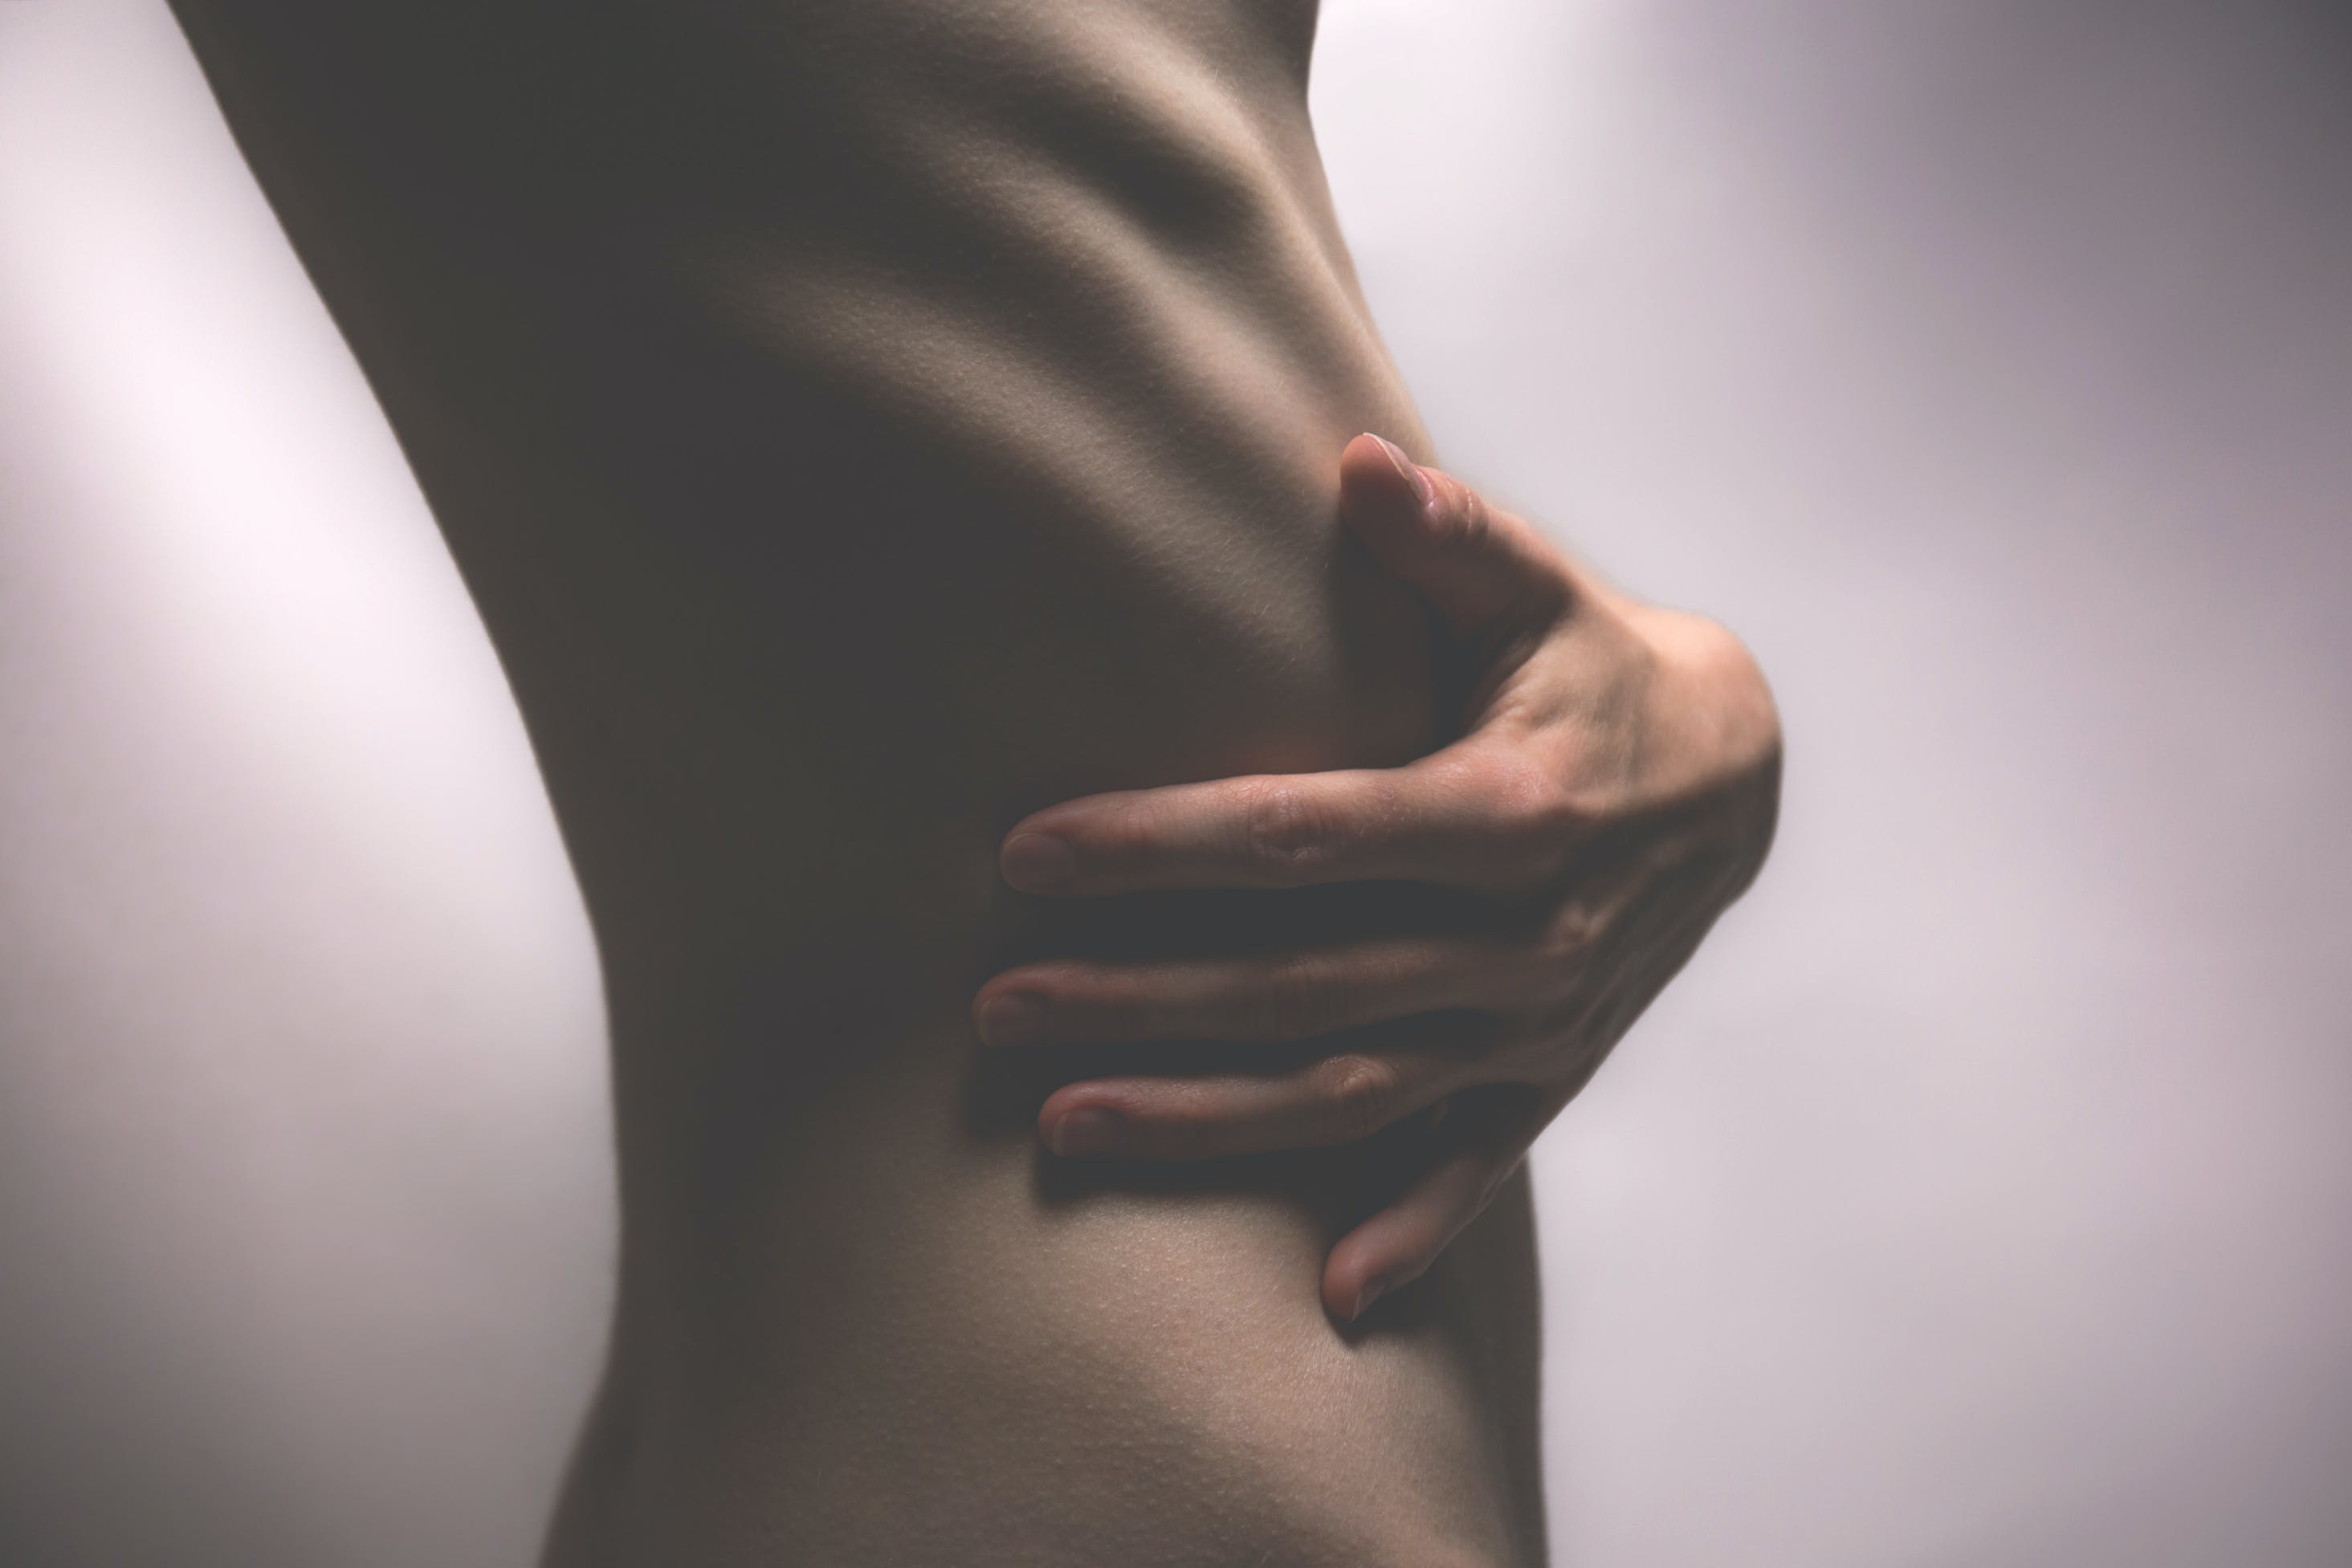 Side View Photo of Person Touching Stomach